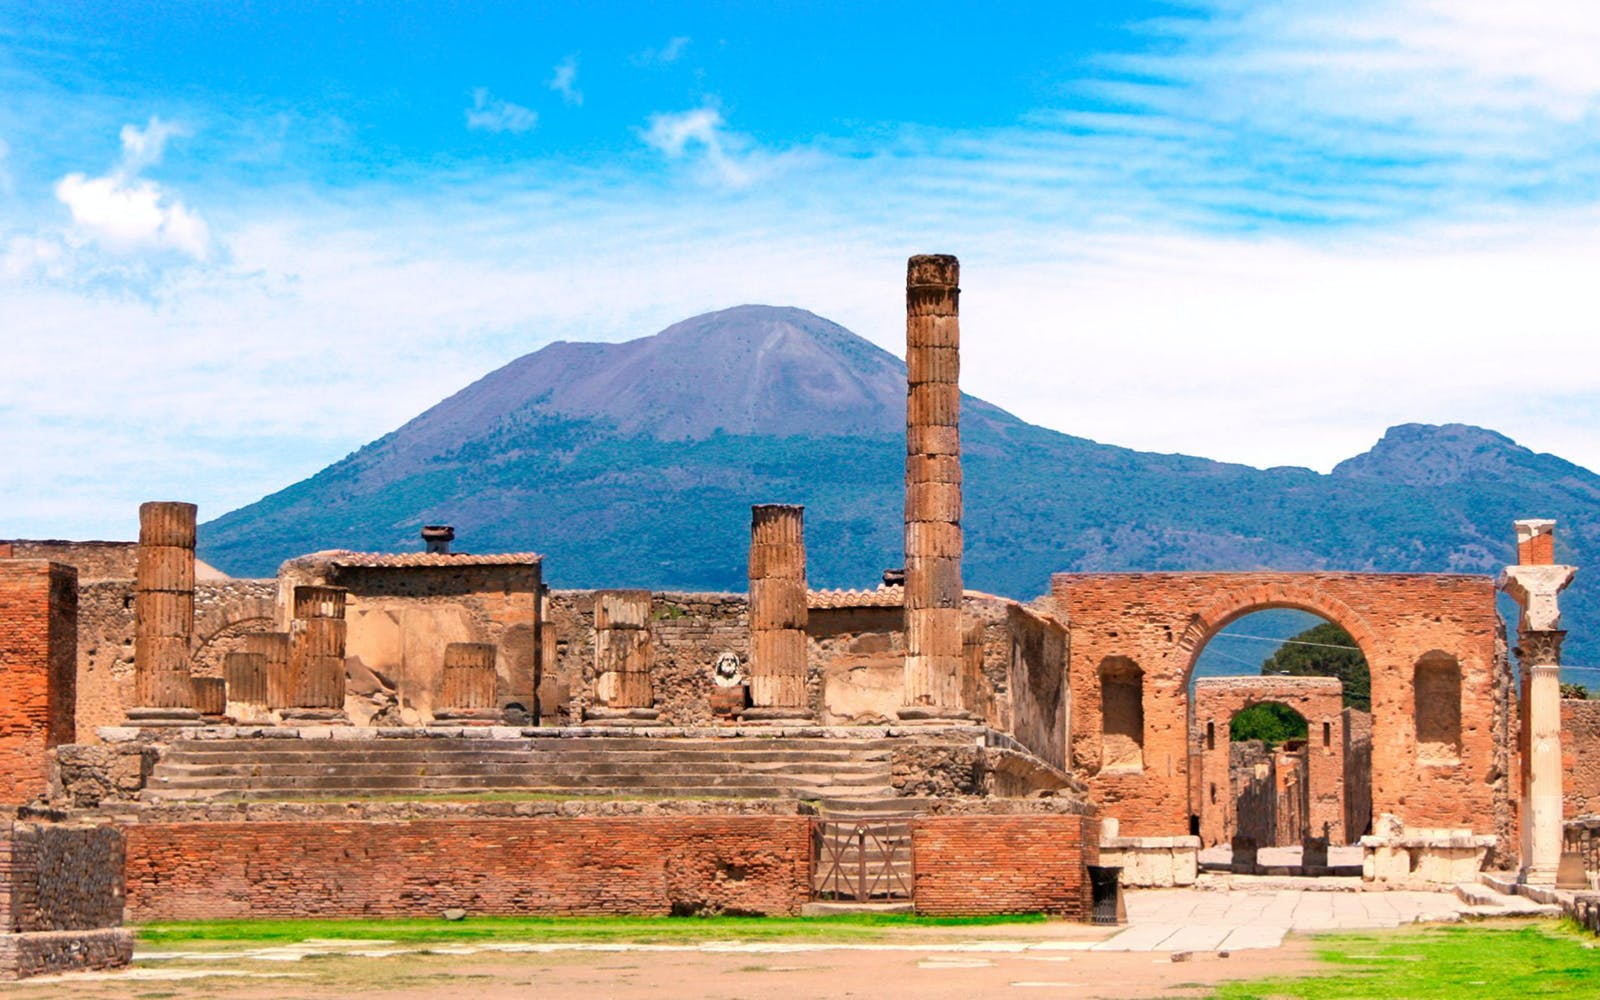 Skip the Line Access to Pompeii with Transfers